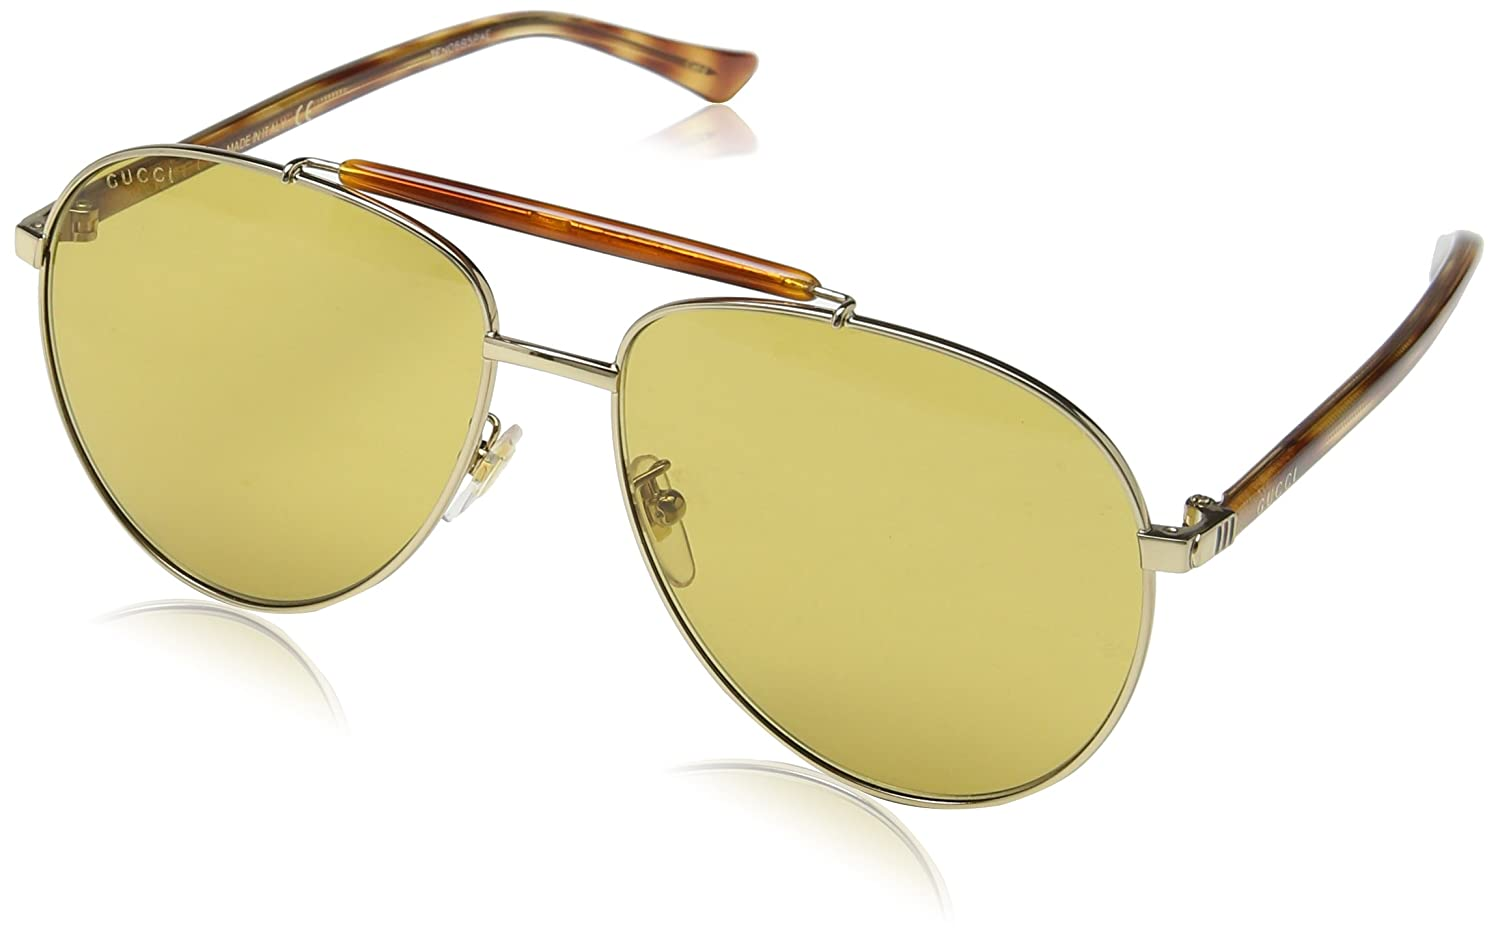 2fbc06204d5 Amazon.com  Gucci GG0014S Fashion Sunglasses 60 mm  Clothing